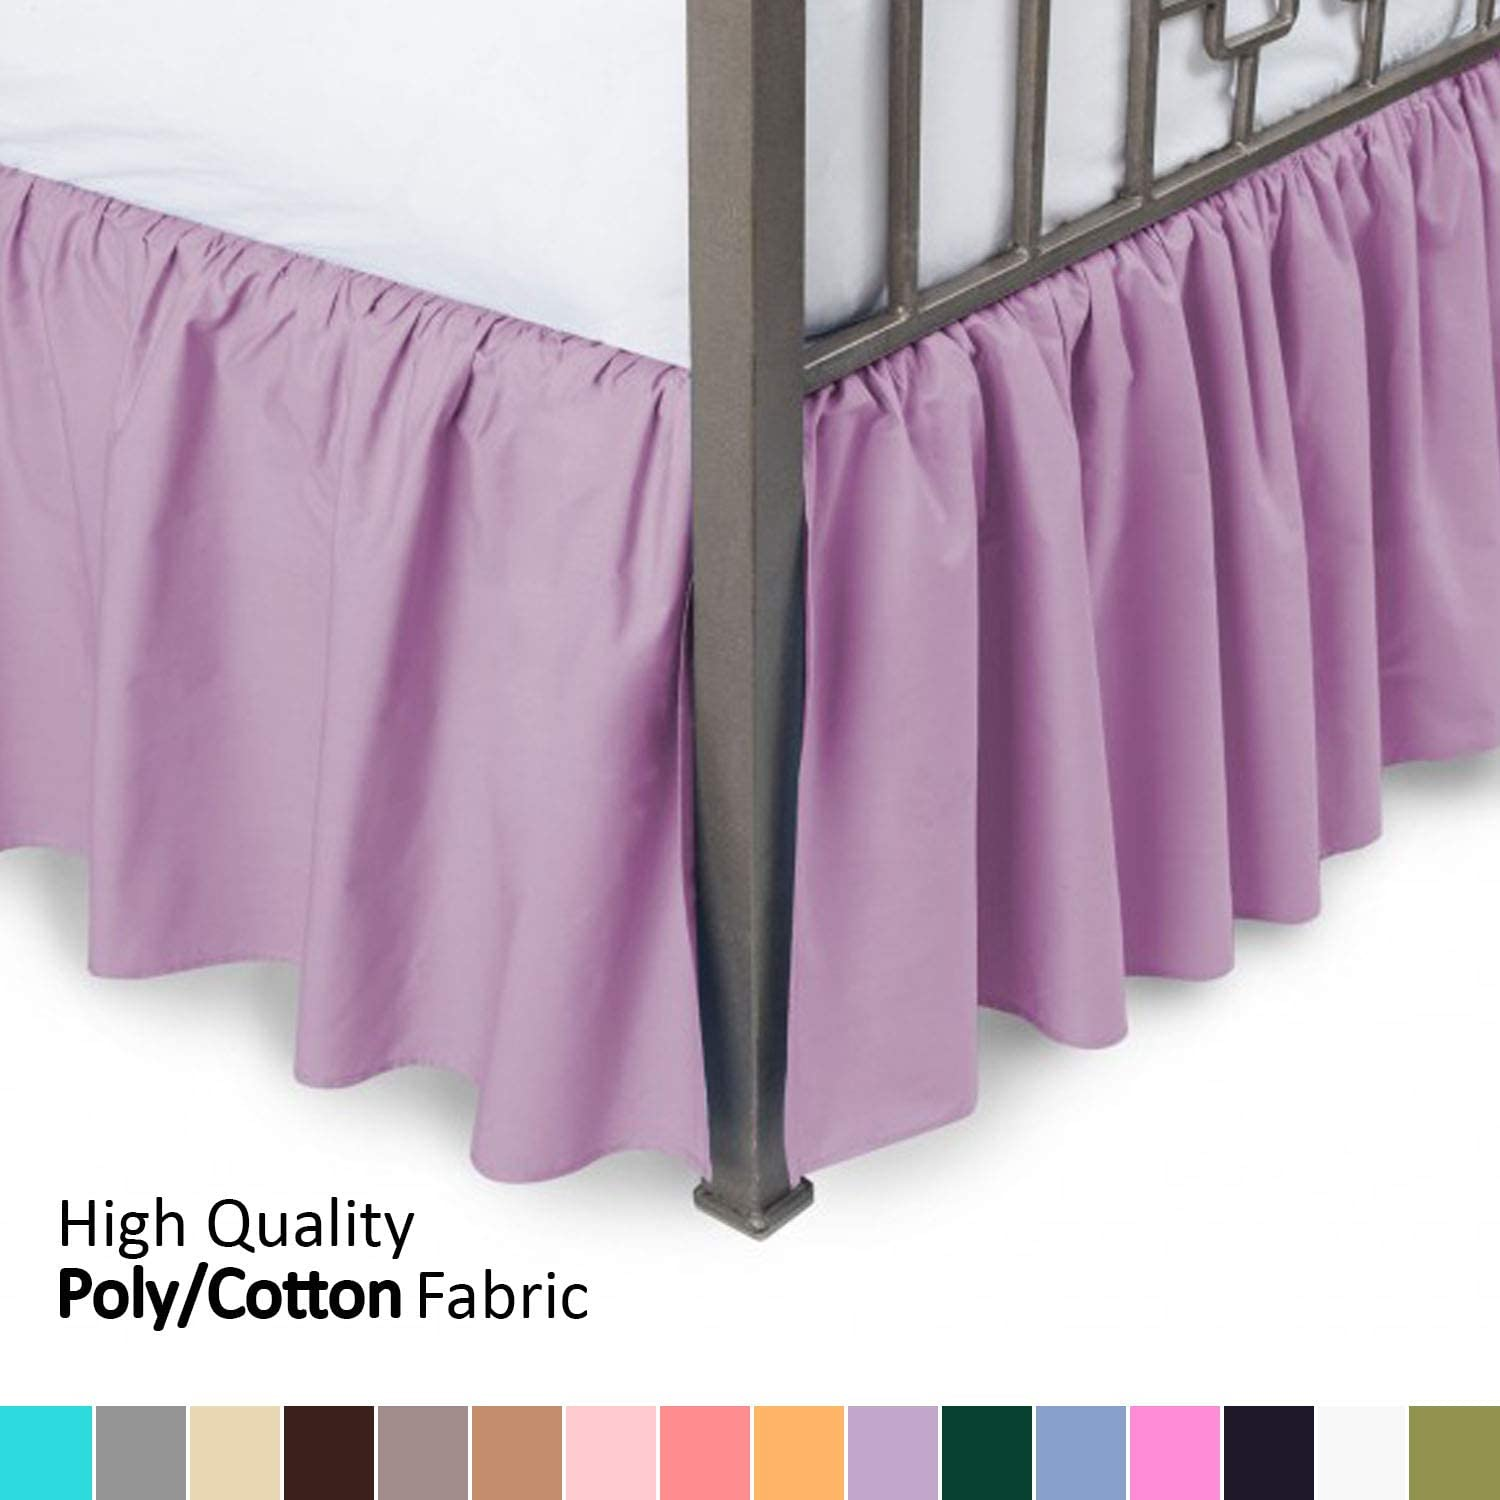 Ruffled Bed Skirt with Split Corners - King, Lavender, 18 Inch Drop Bedskirt (Available in and 16 Colors) - Blissford Dust Ruffle.